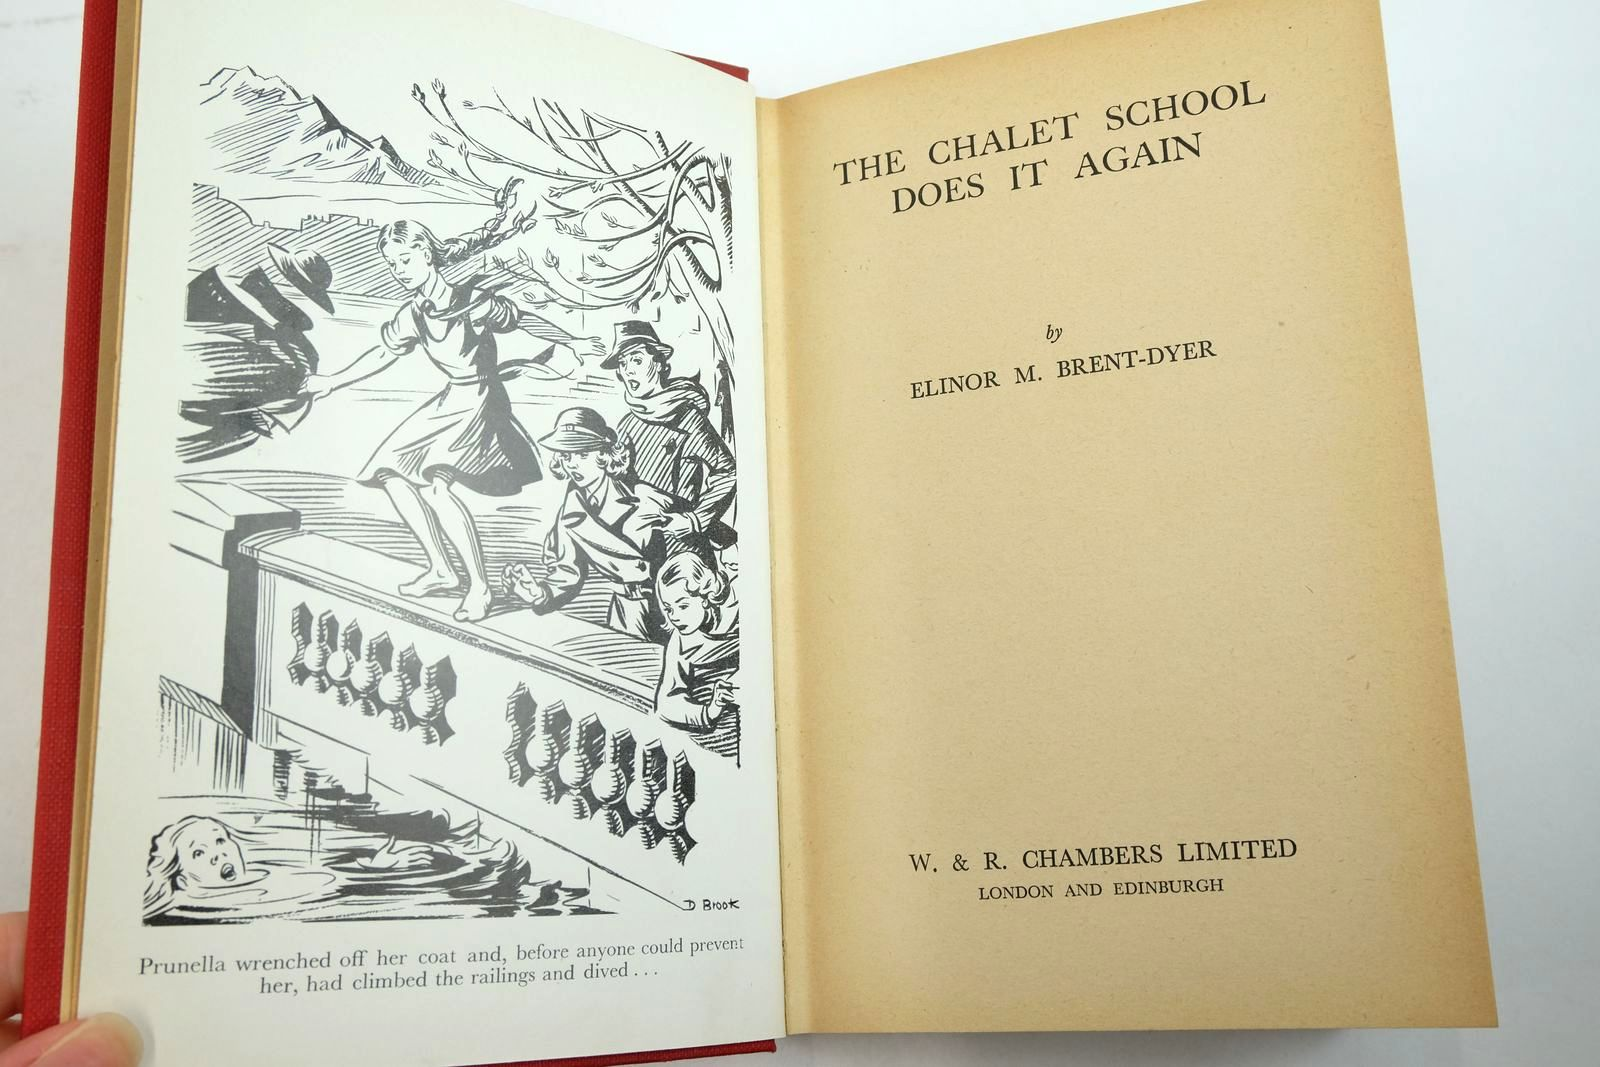 Photo of THE CHALET SCHOOL DOES IT AGAIN written by Brent-Dyer, Elinor M. illustrated by Brook, D. published by W. & R. Chambers Limited (STOCK CODE: 2135223)  for sale by Stella & Rose's Books